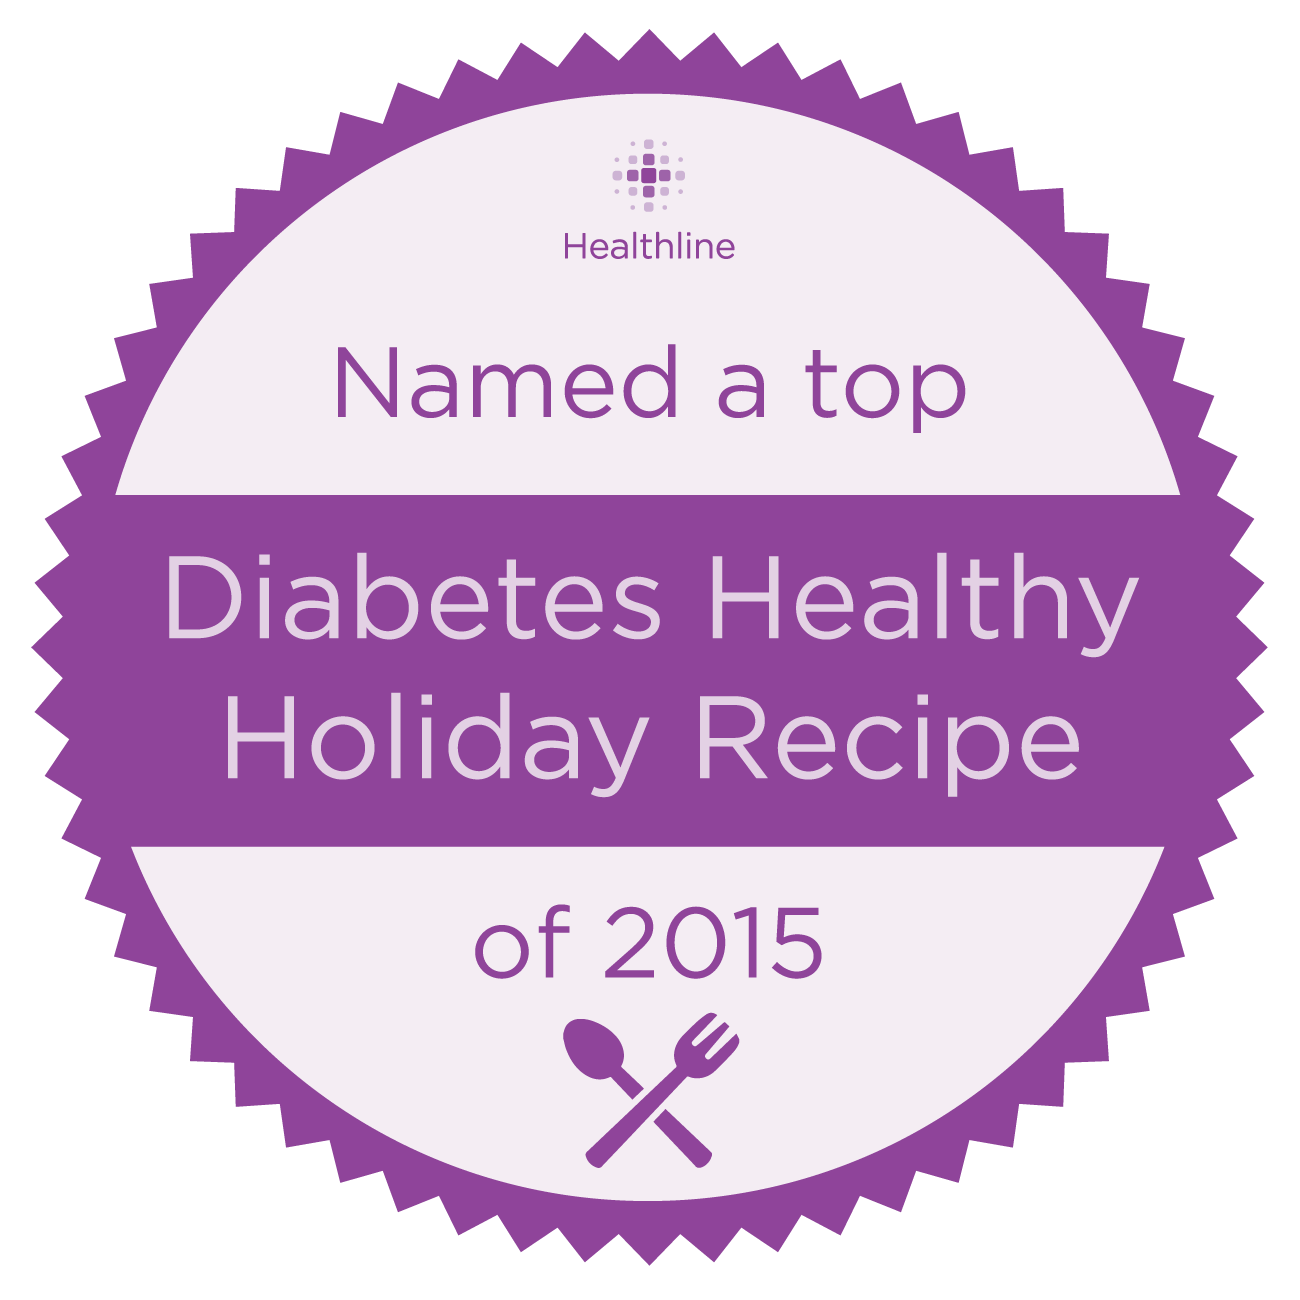 The Best Diabetes-Friendly Holiday Recipes